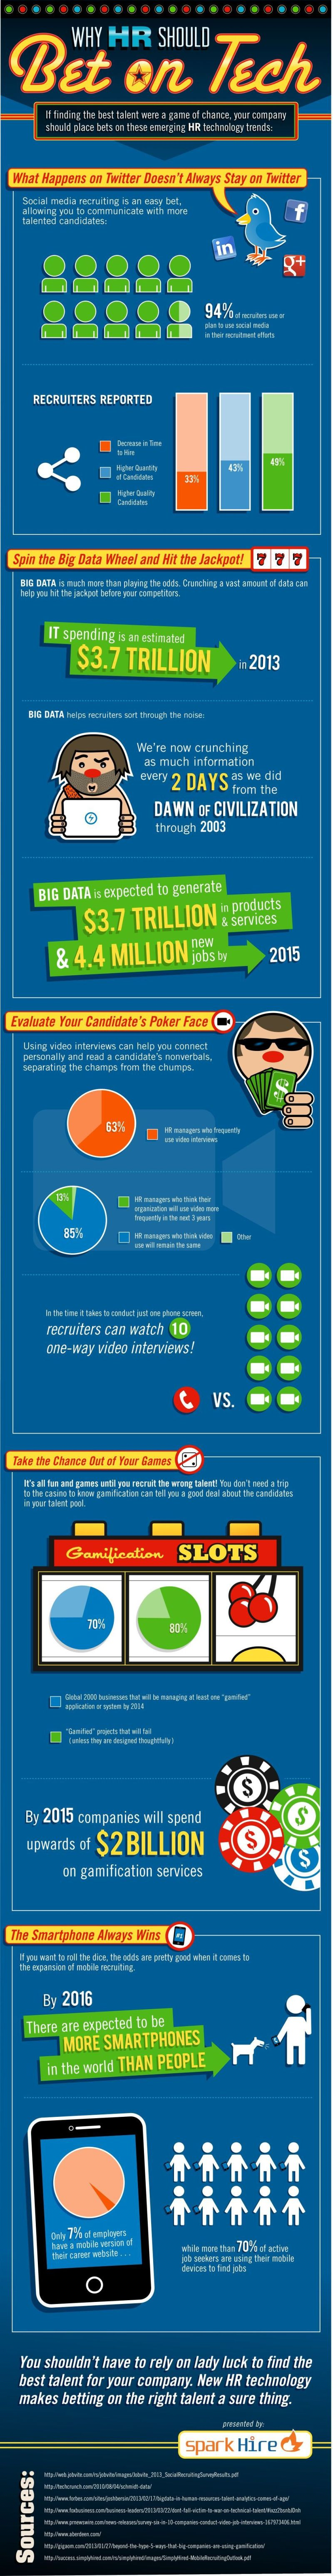 Infographic - HR Technology Trends